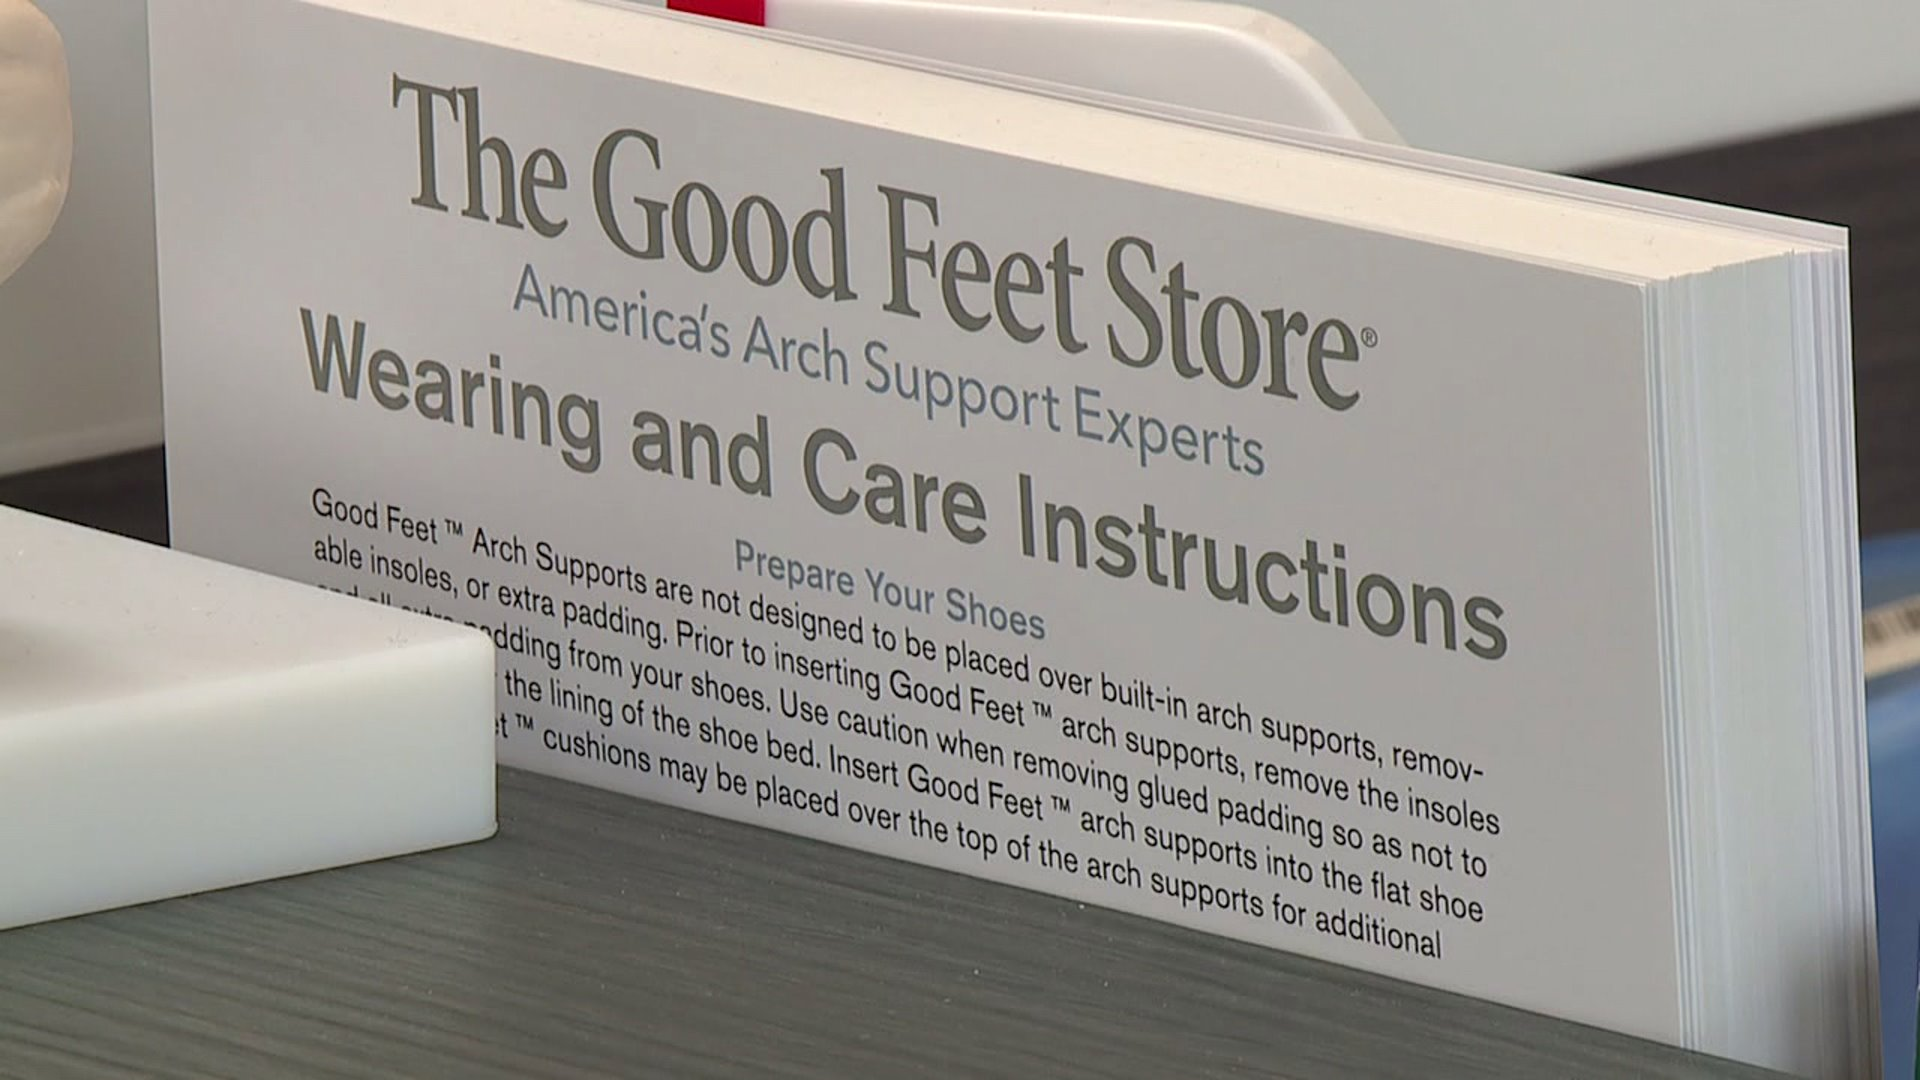 Small Business Spotlight: The Good Feet Store